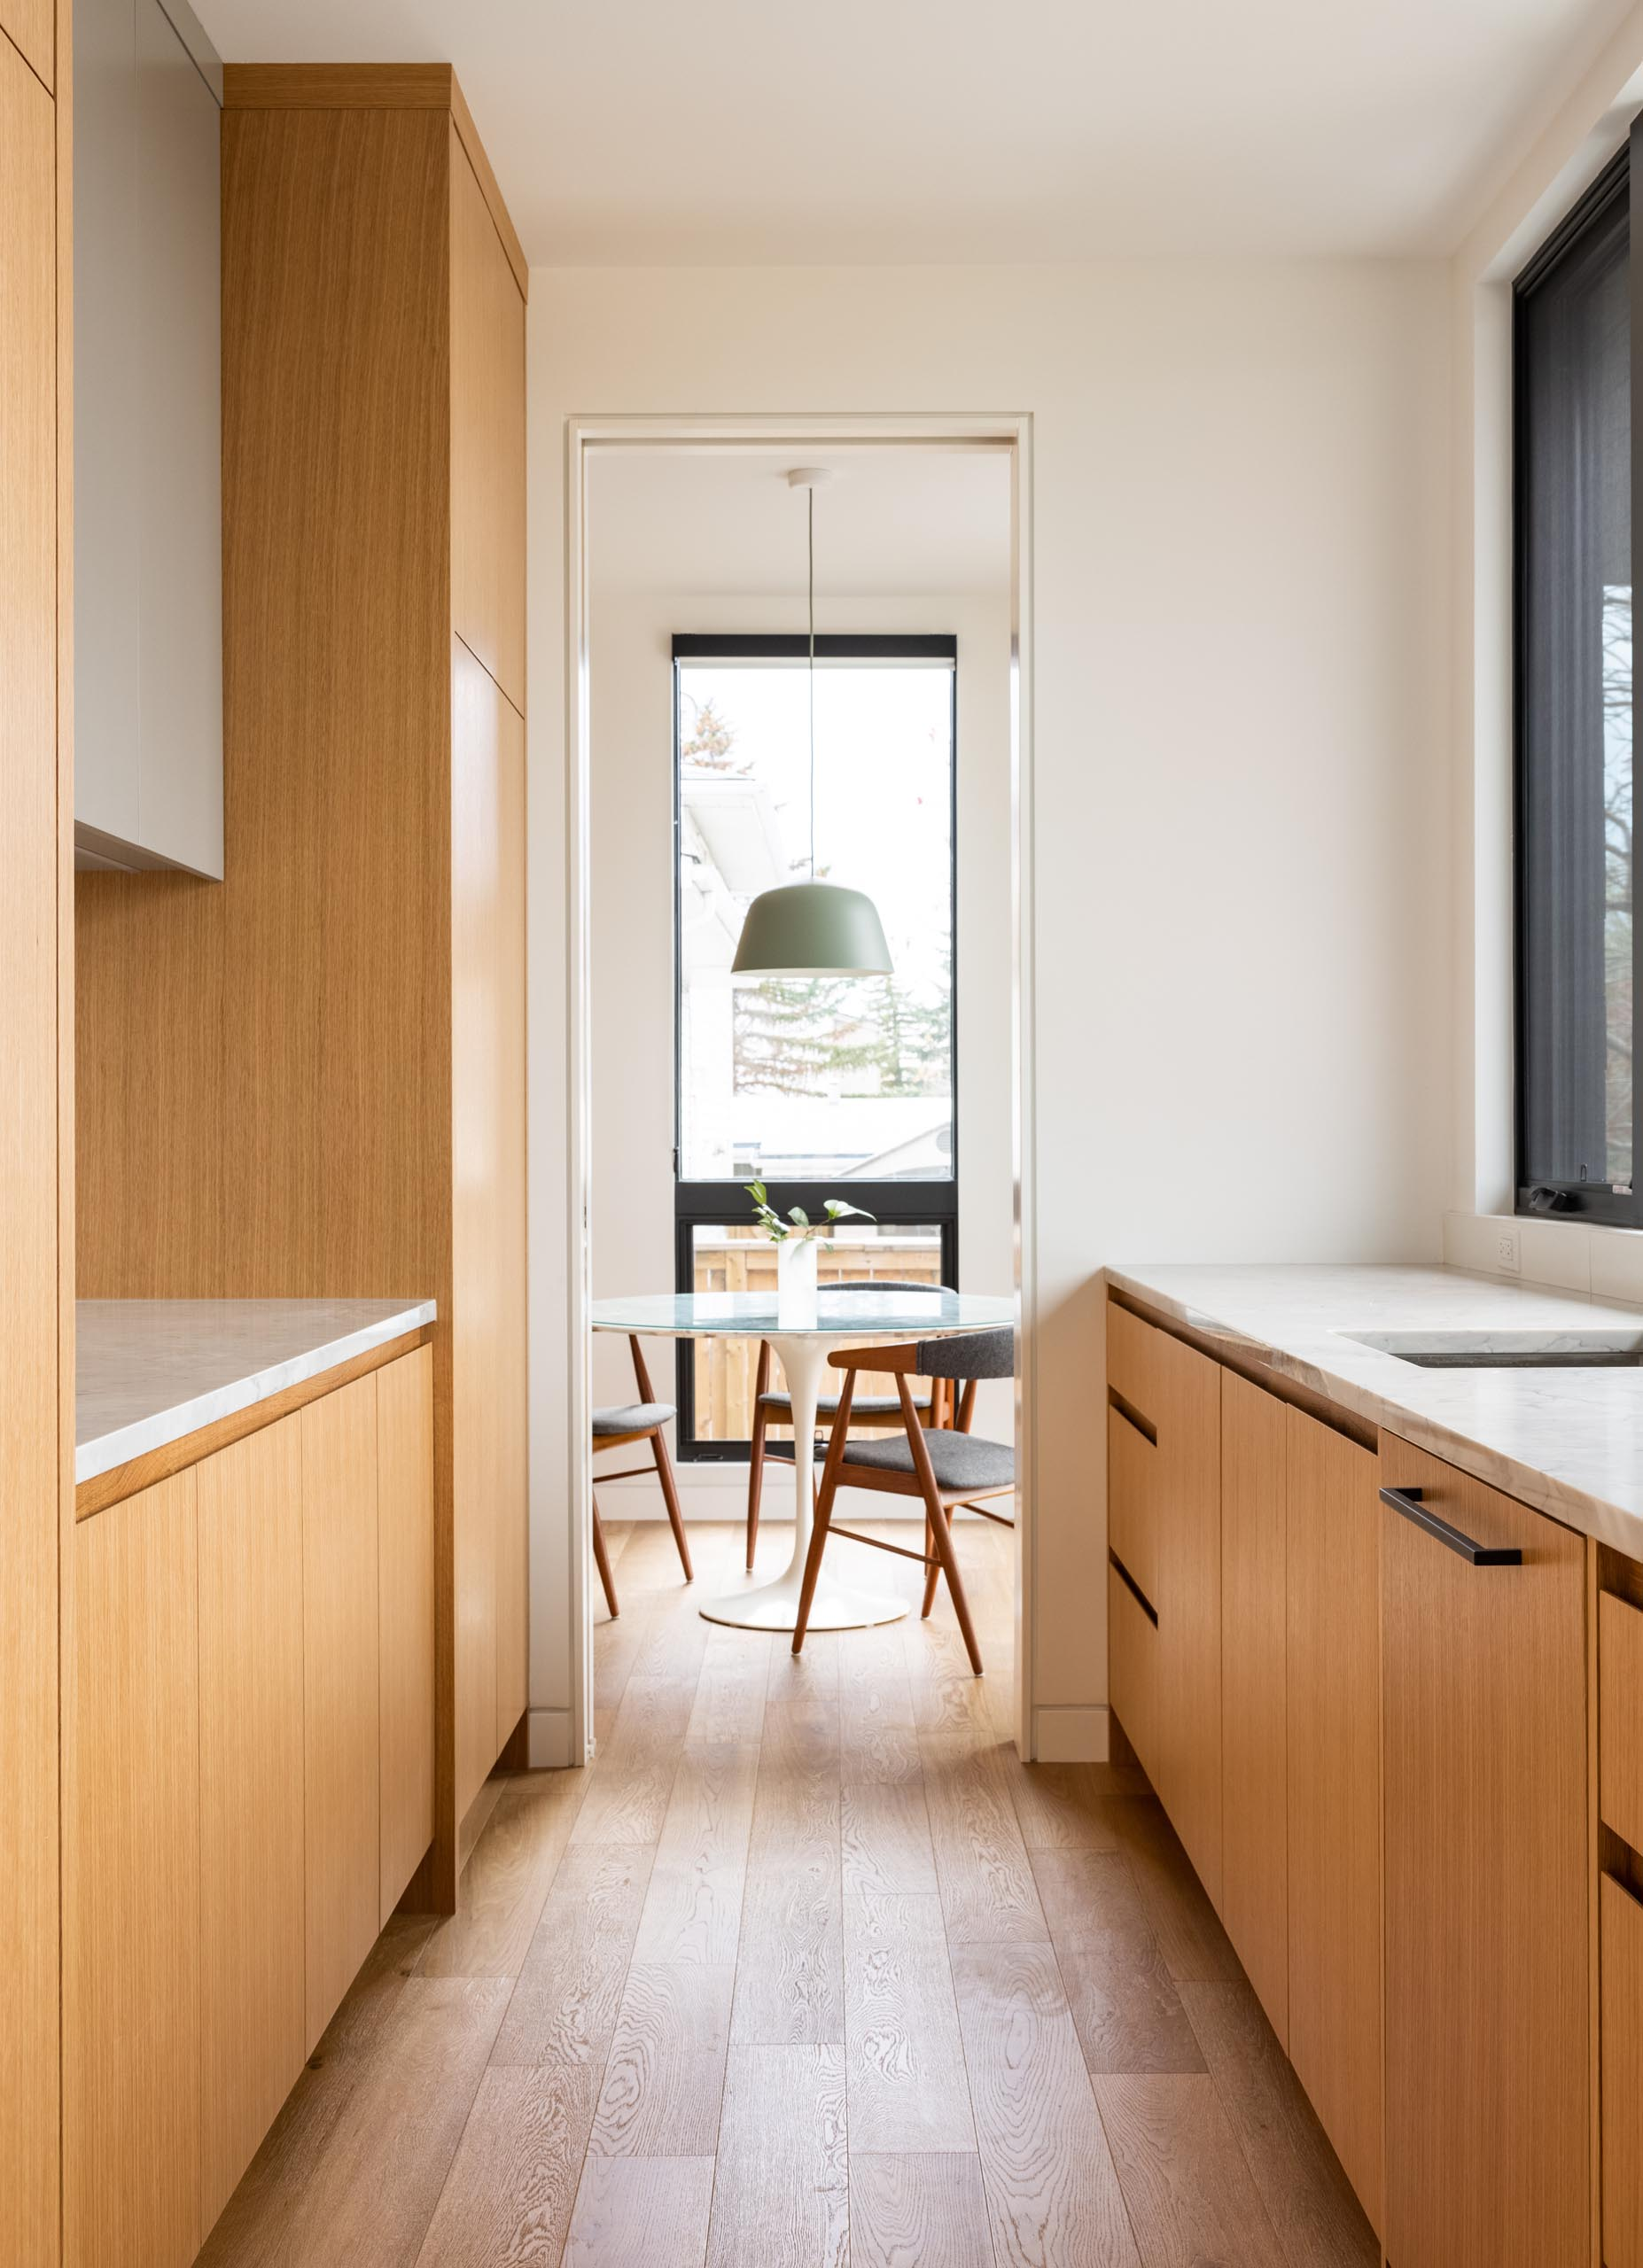 A small breakfast area is located off the kitchen, while a walk-through pantry connects with the main dining room.